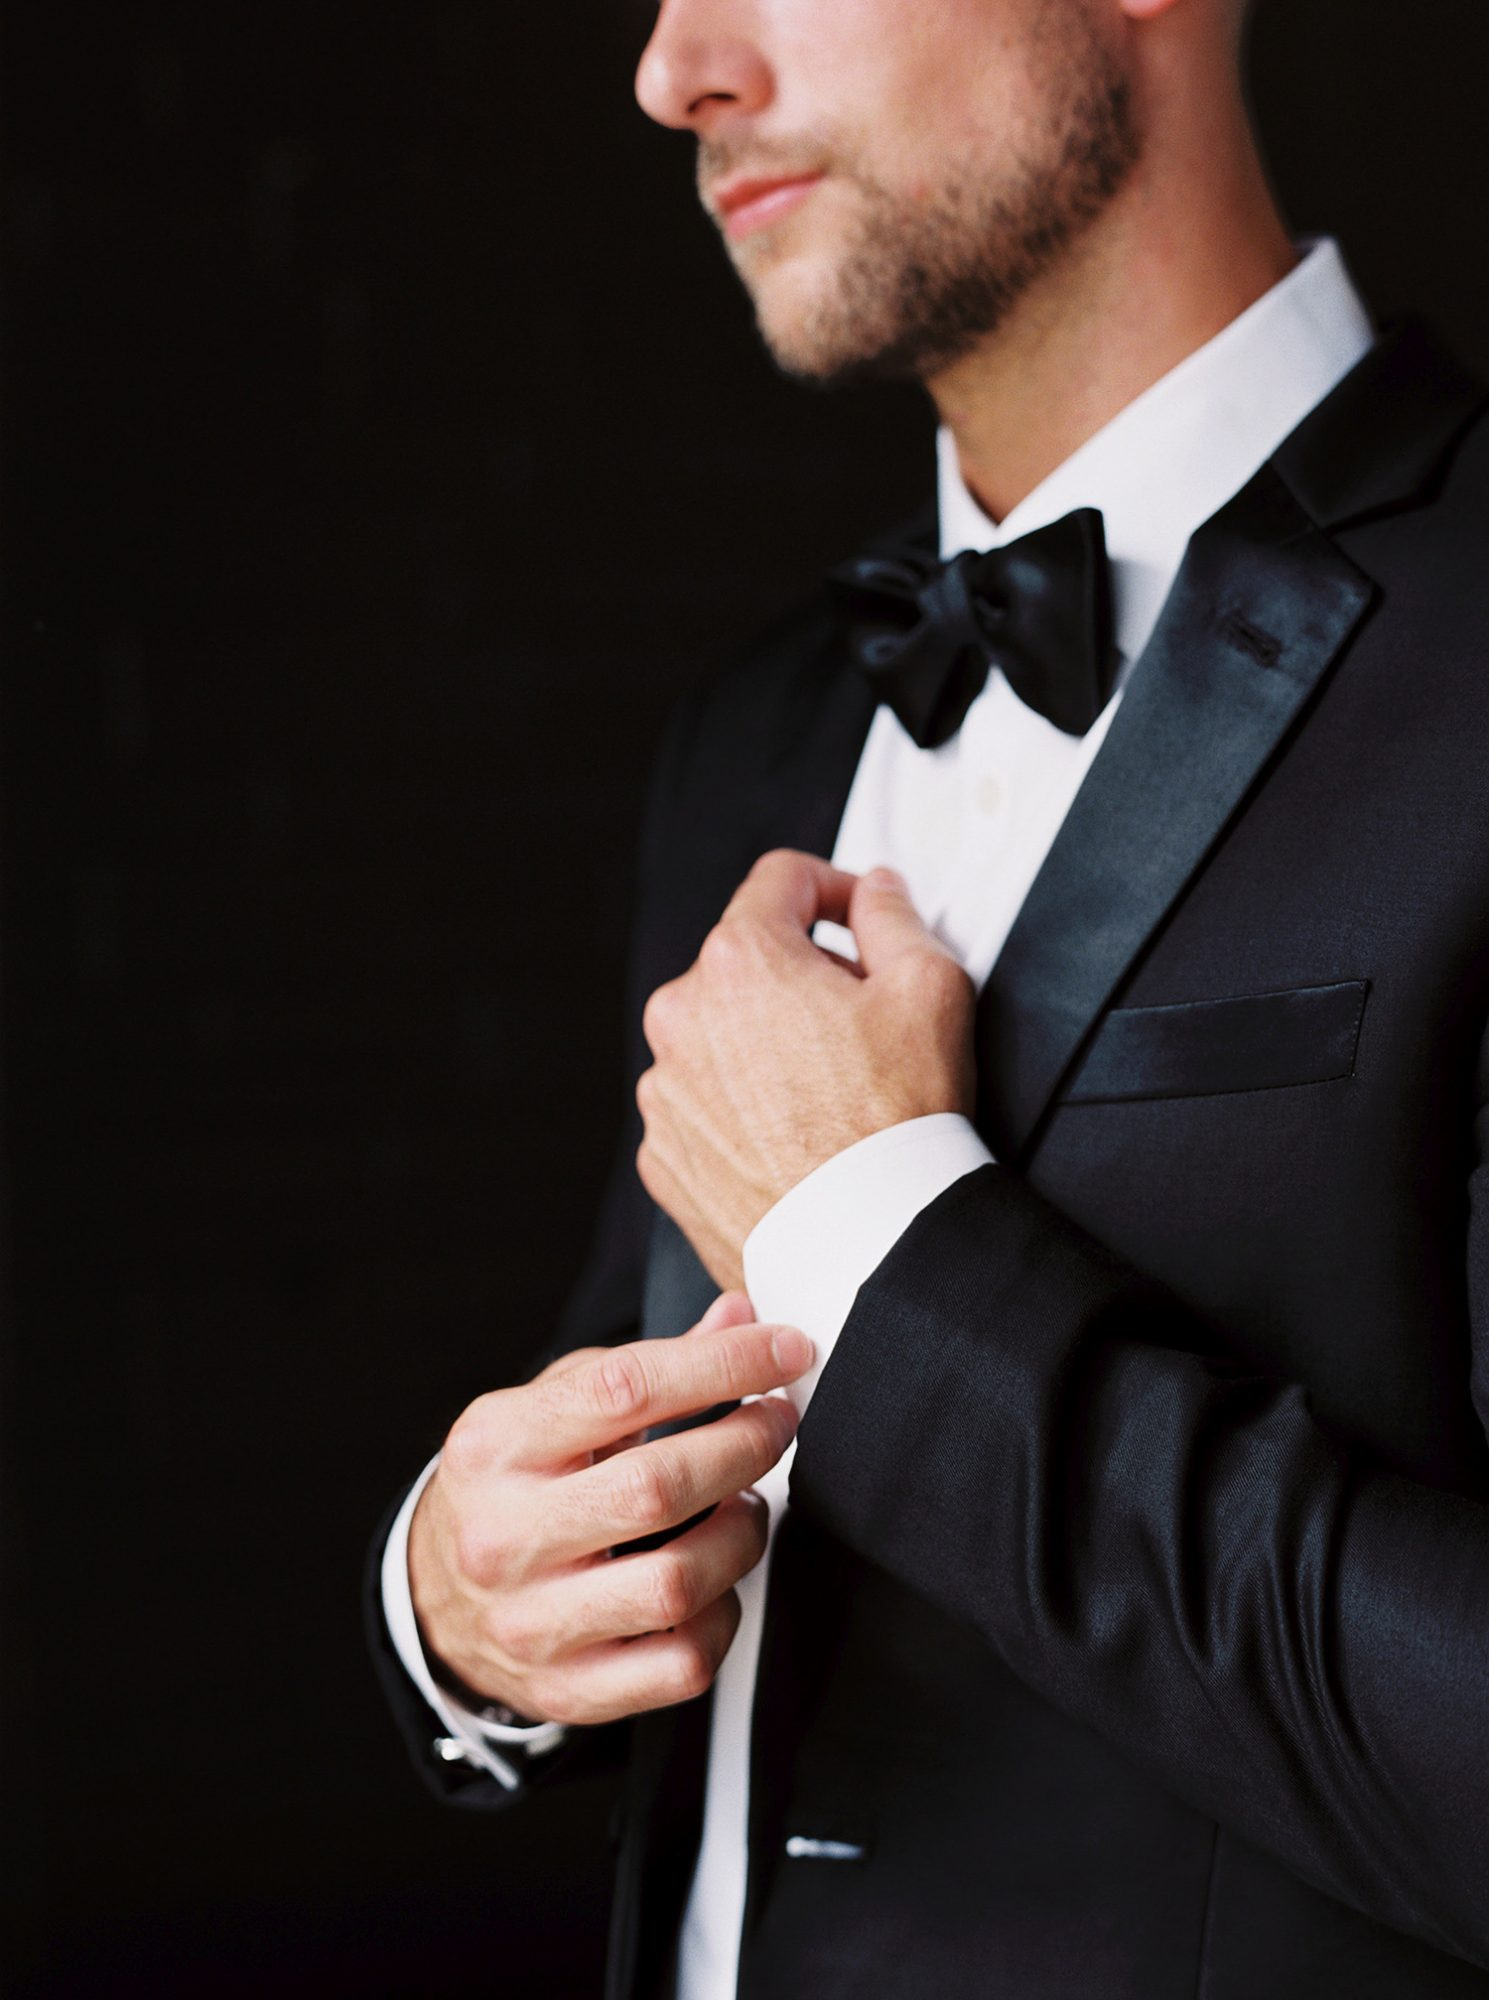 dawn jordan wedding tuxedo groom